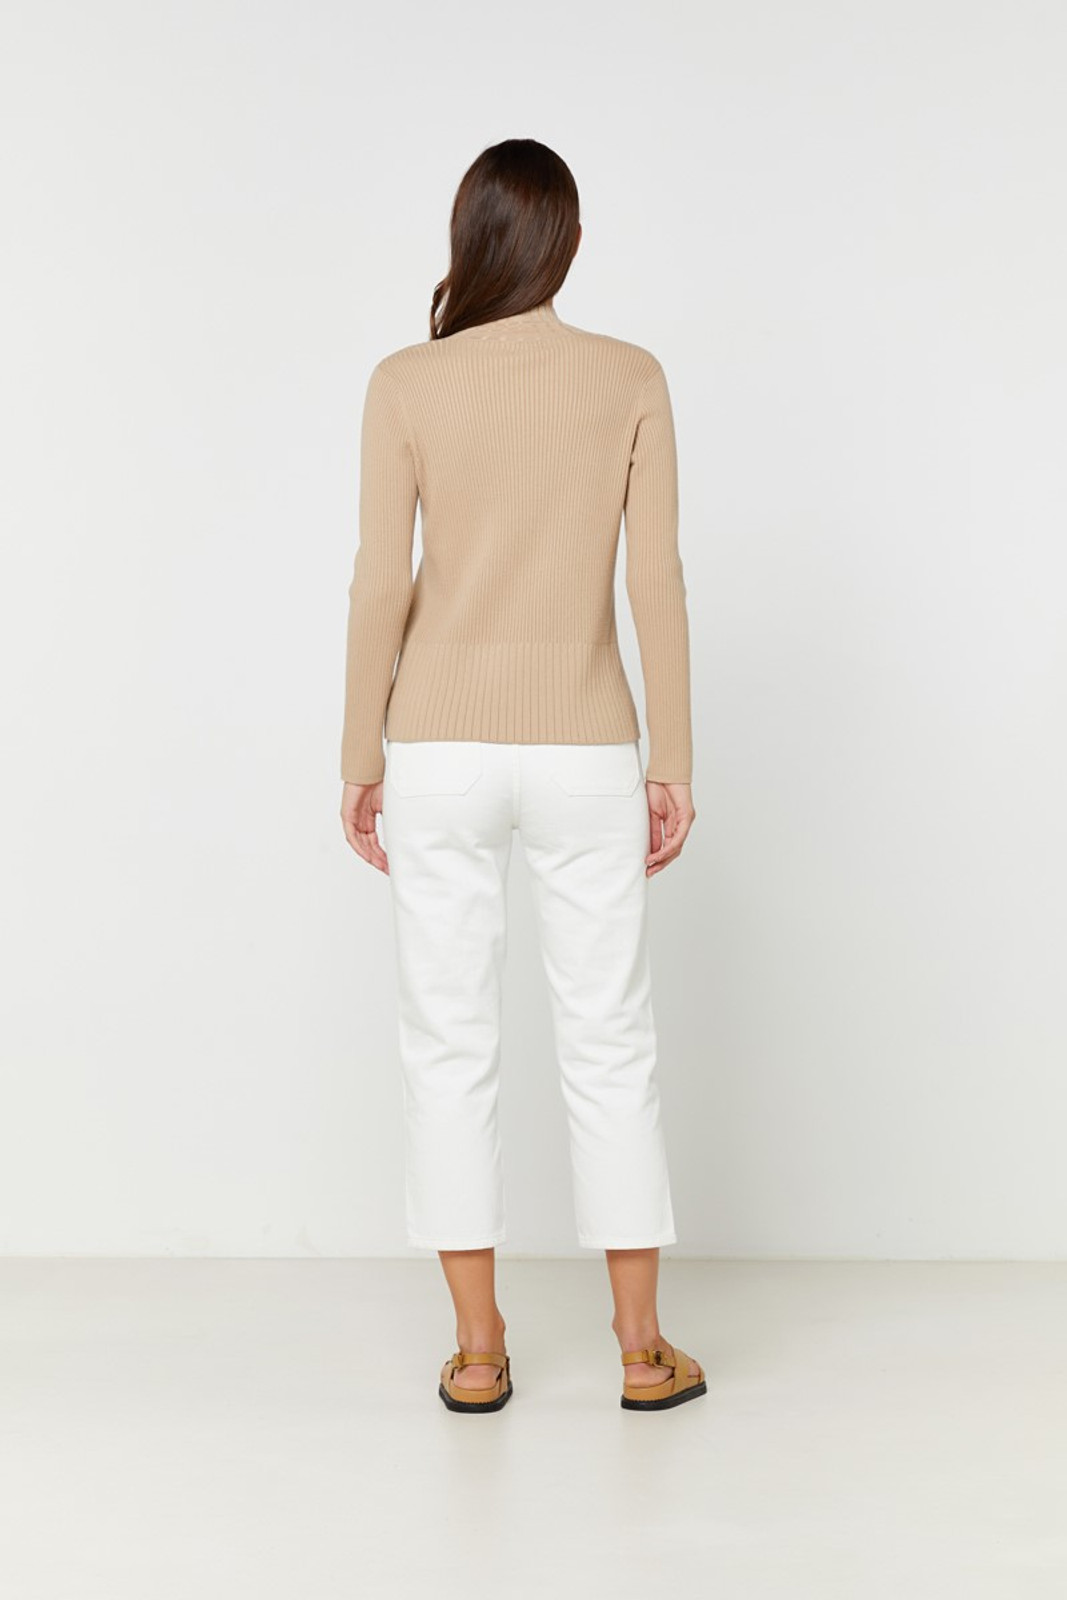 Elka Collective  Neutrals Carson Knit 6